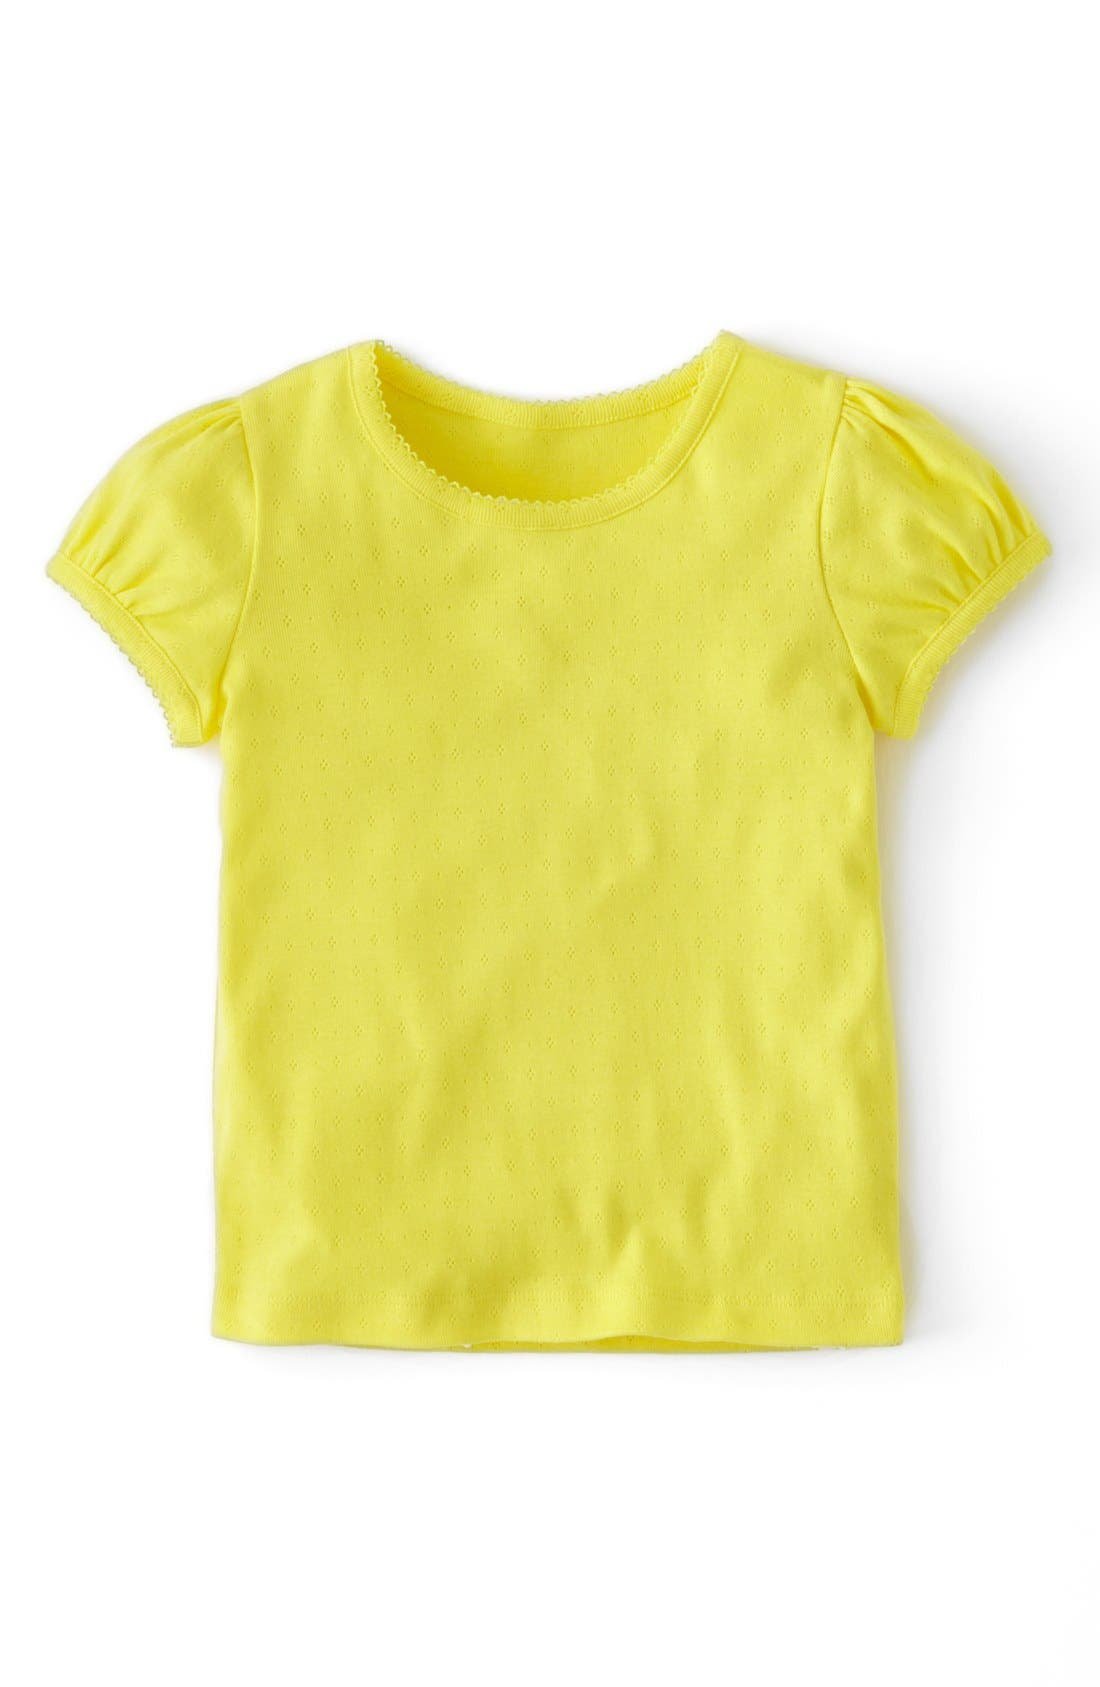 Alternate Image 1 Selected - Mini Boden Pointelle Cap Sleeve Tee (Toddler Girls, Little Girls & Big Girls)